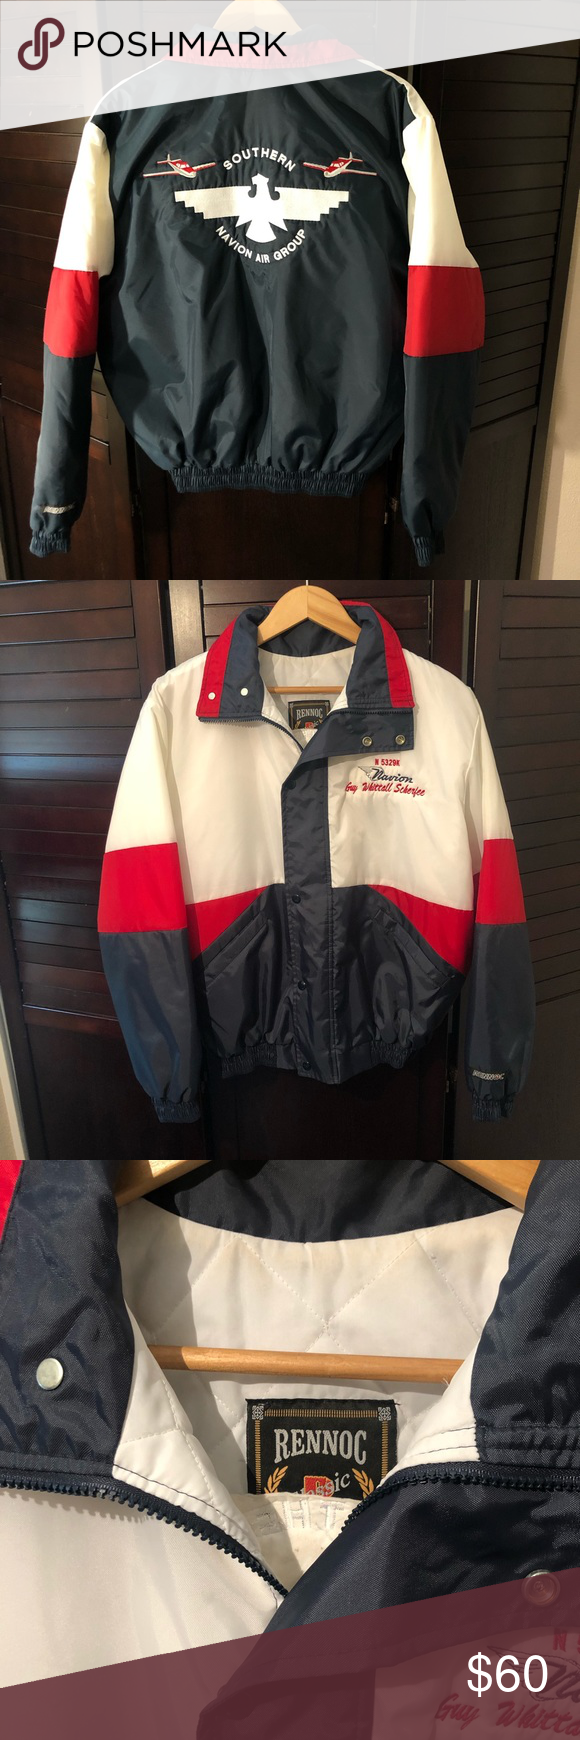 Vintage Rennoc Classic Navion Air Group Jacket Jackets